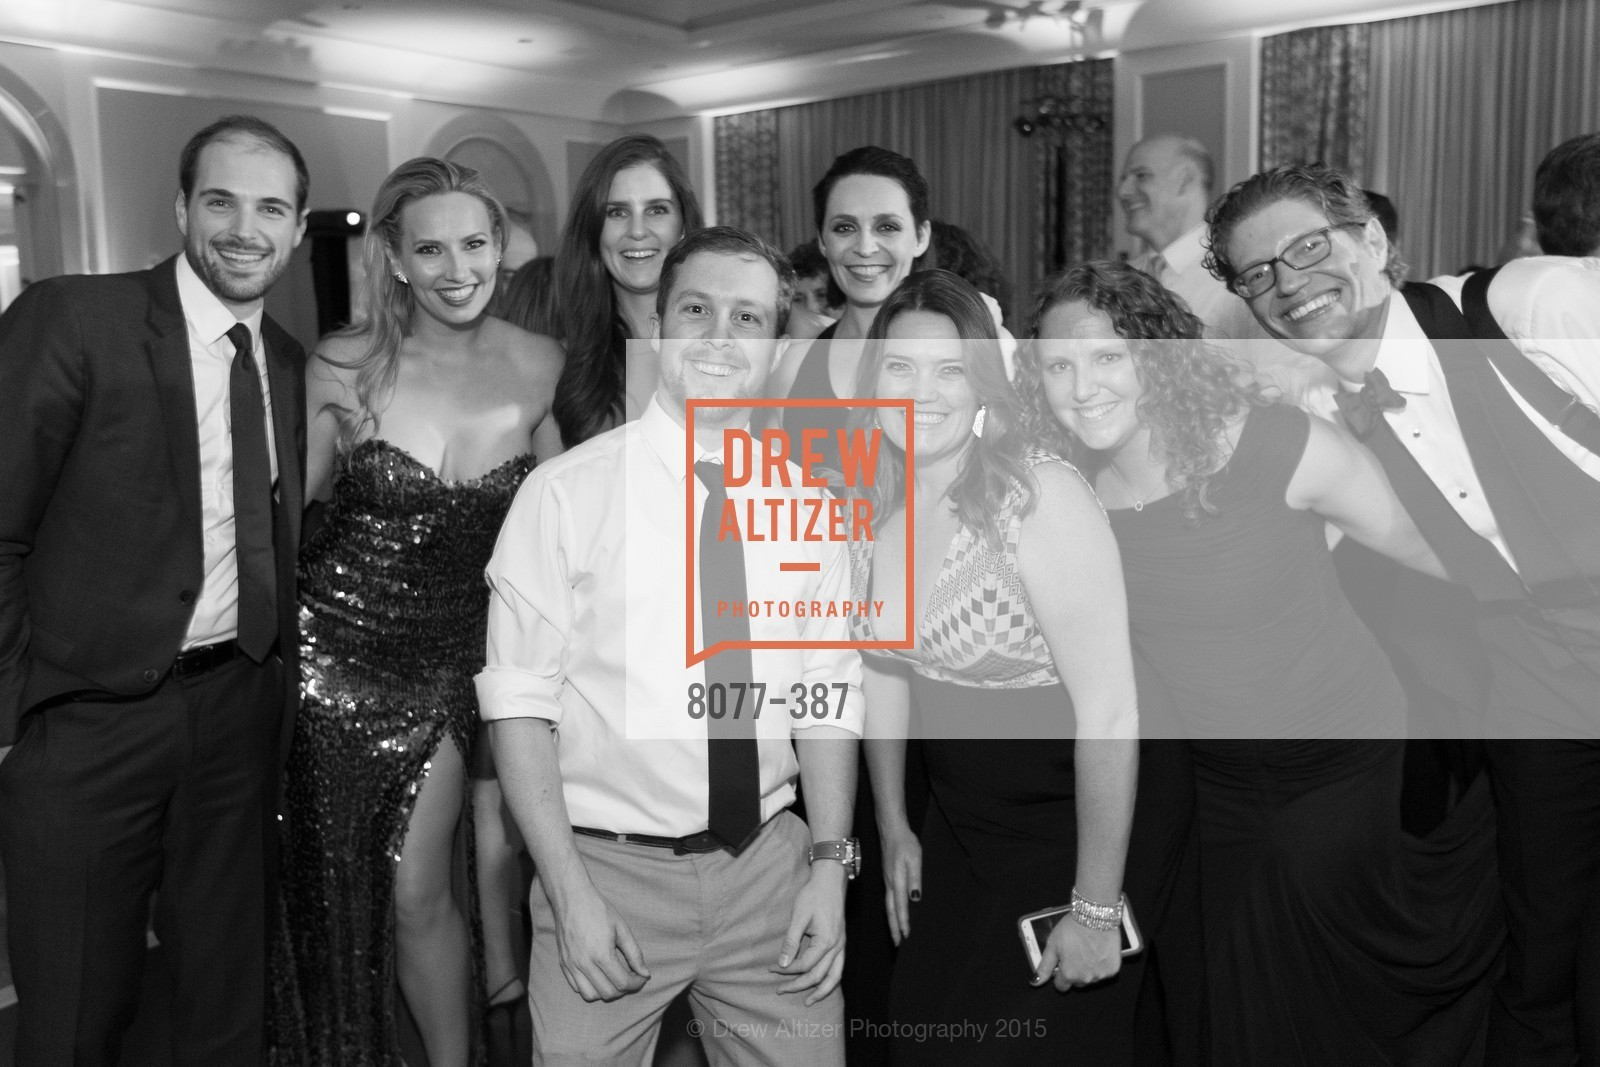 Brendan O'Callaghan, Michelle Ashman, Erin Odisio, Jeremiah Boehner, Colette Gallagher, Aryn Yancher, Peter DiFrancesca, Amanda Schneider, Ronald McDonald House 2015 Home Away From Home Gala, Four Seasons Hotel San Francisco, Grand Ballroom. 757 Market St, October 16th, 2015,Drew Altizer, Drew Altizer Photography, full-service agency, private events, San Francisco photographer, photographer california